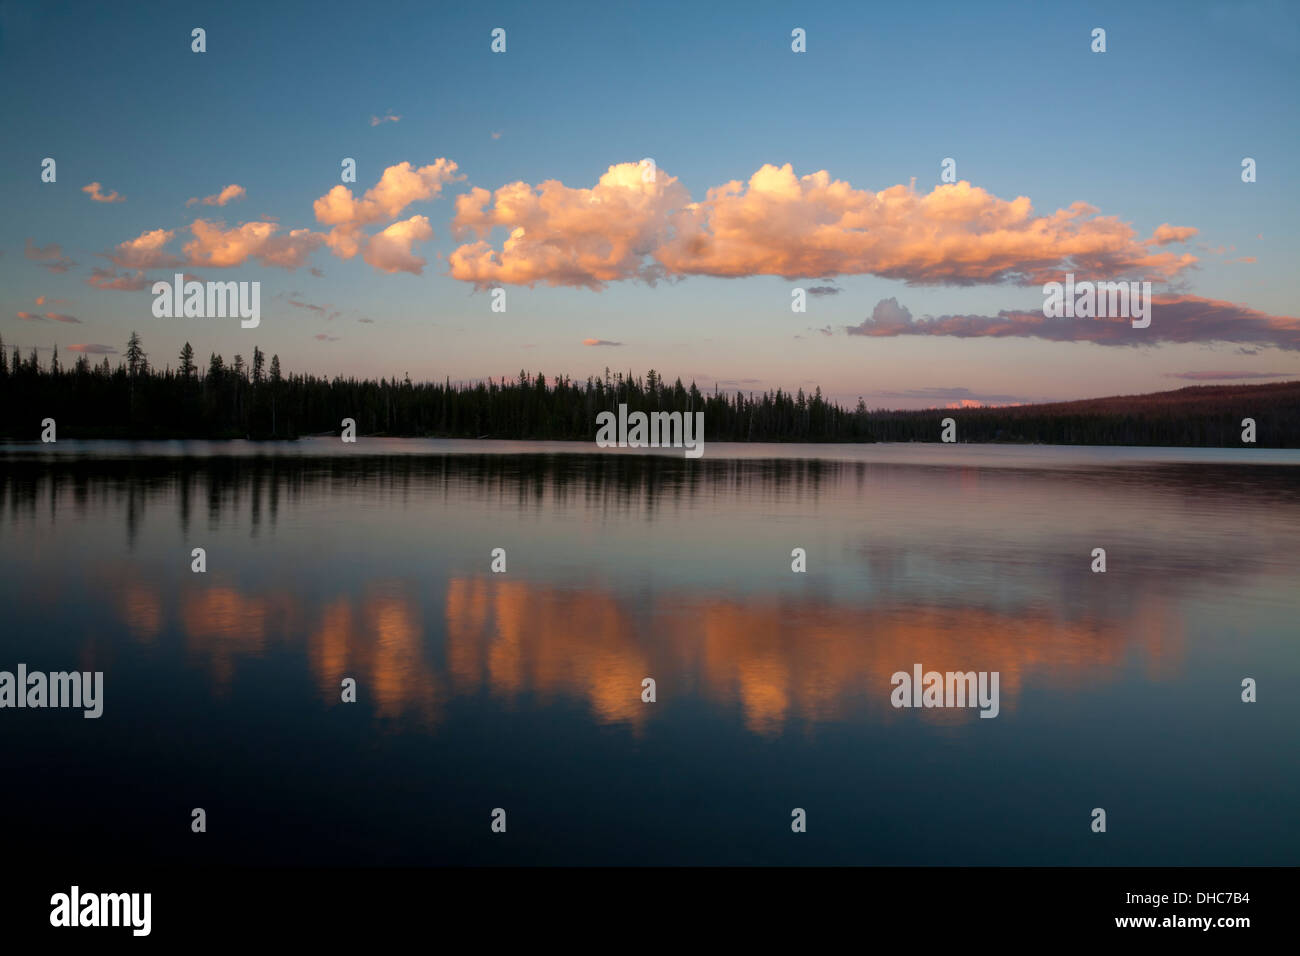 OREGON - Sunset at Big Lake in the Deschutes National Forest. - Stock Image